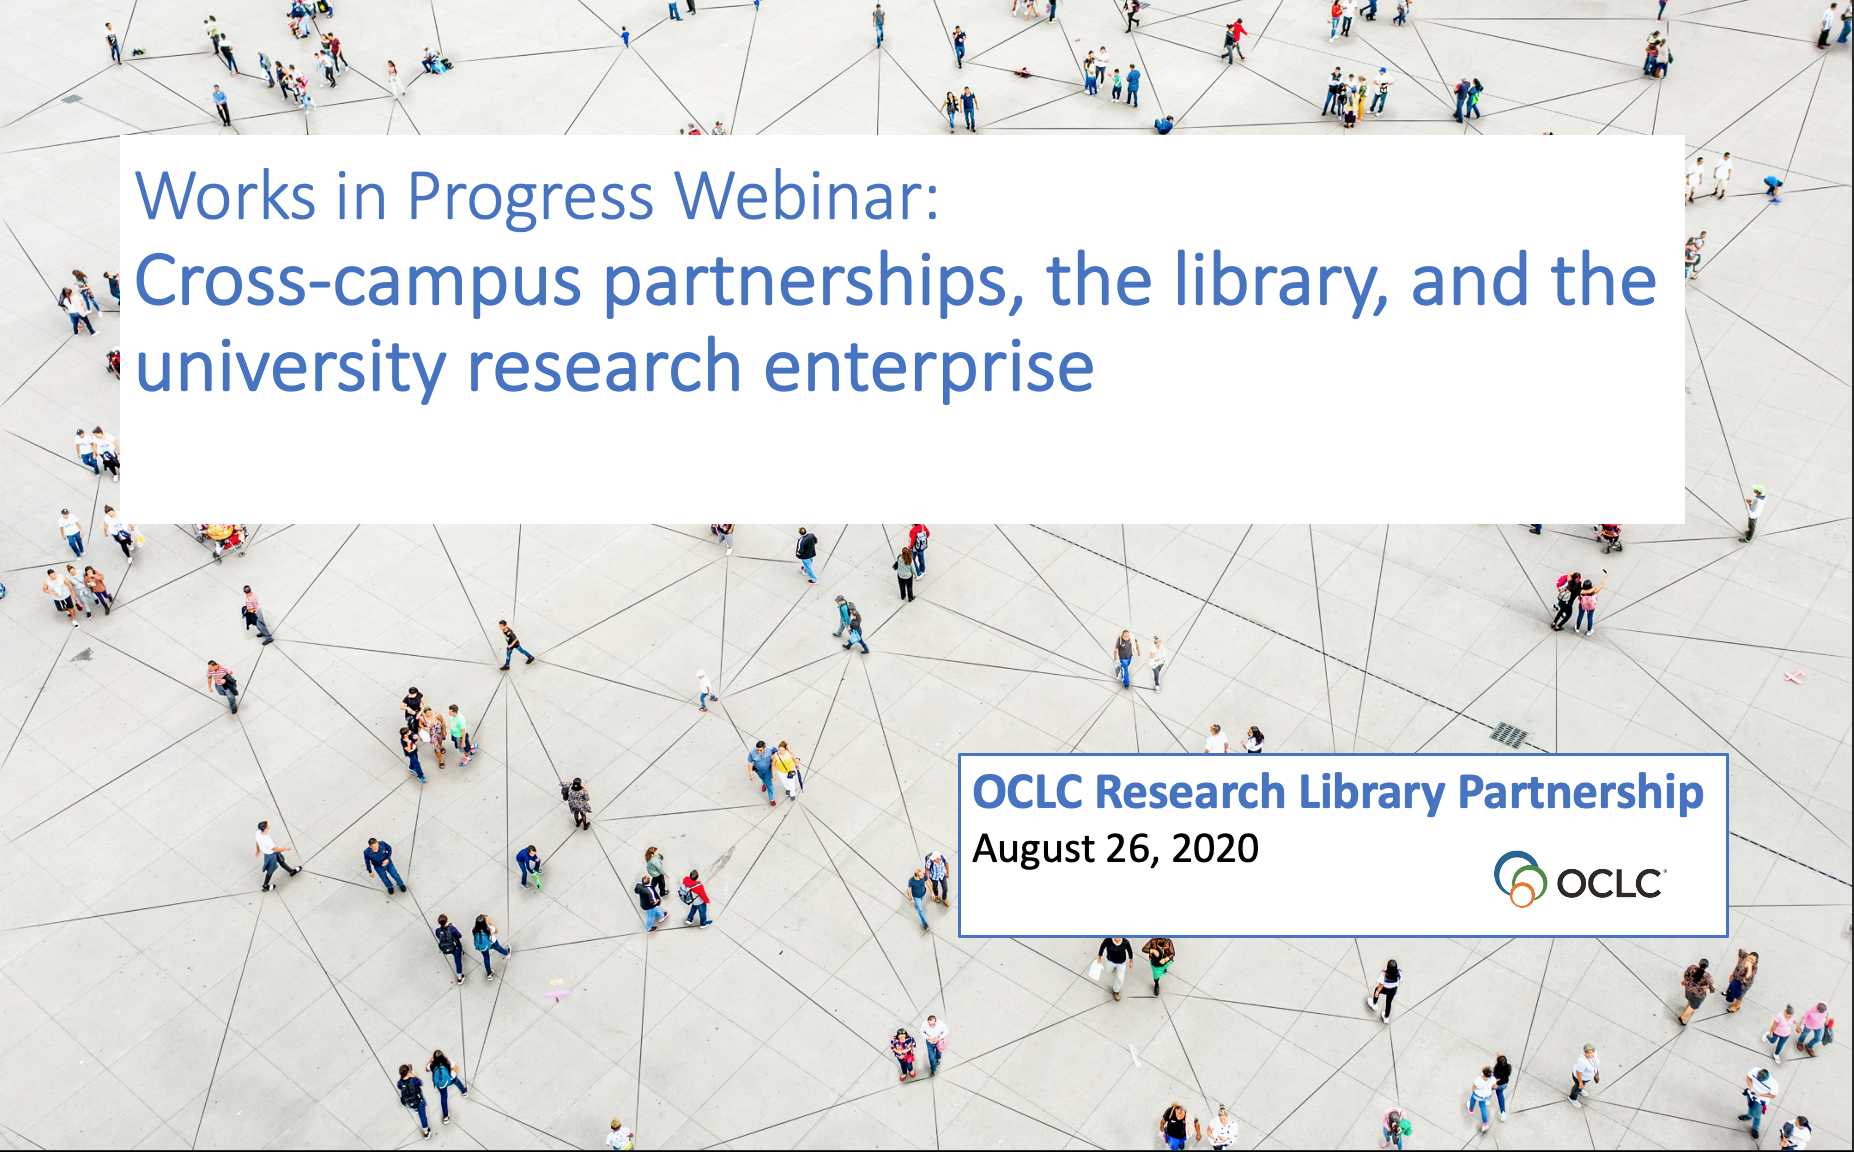 Cross-campus partnerships, the library, and the university research enterprise